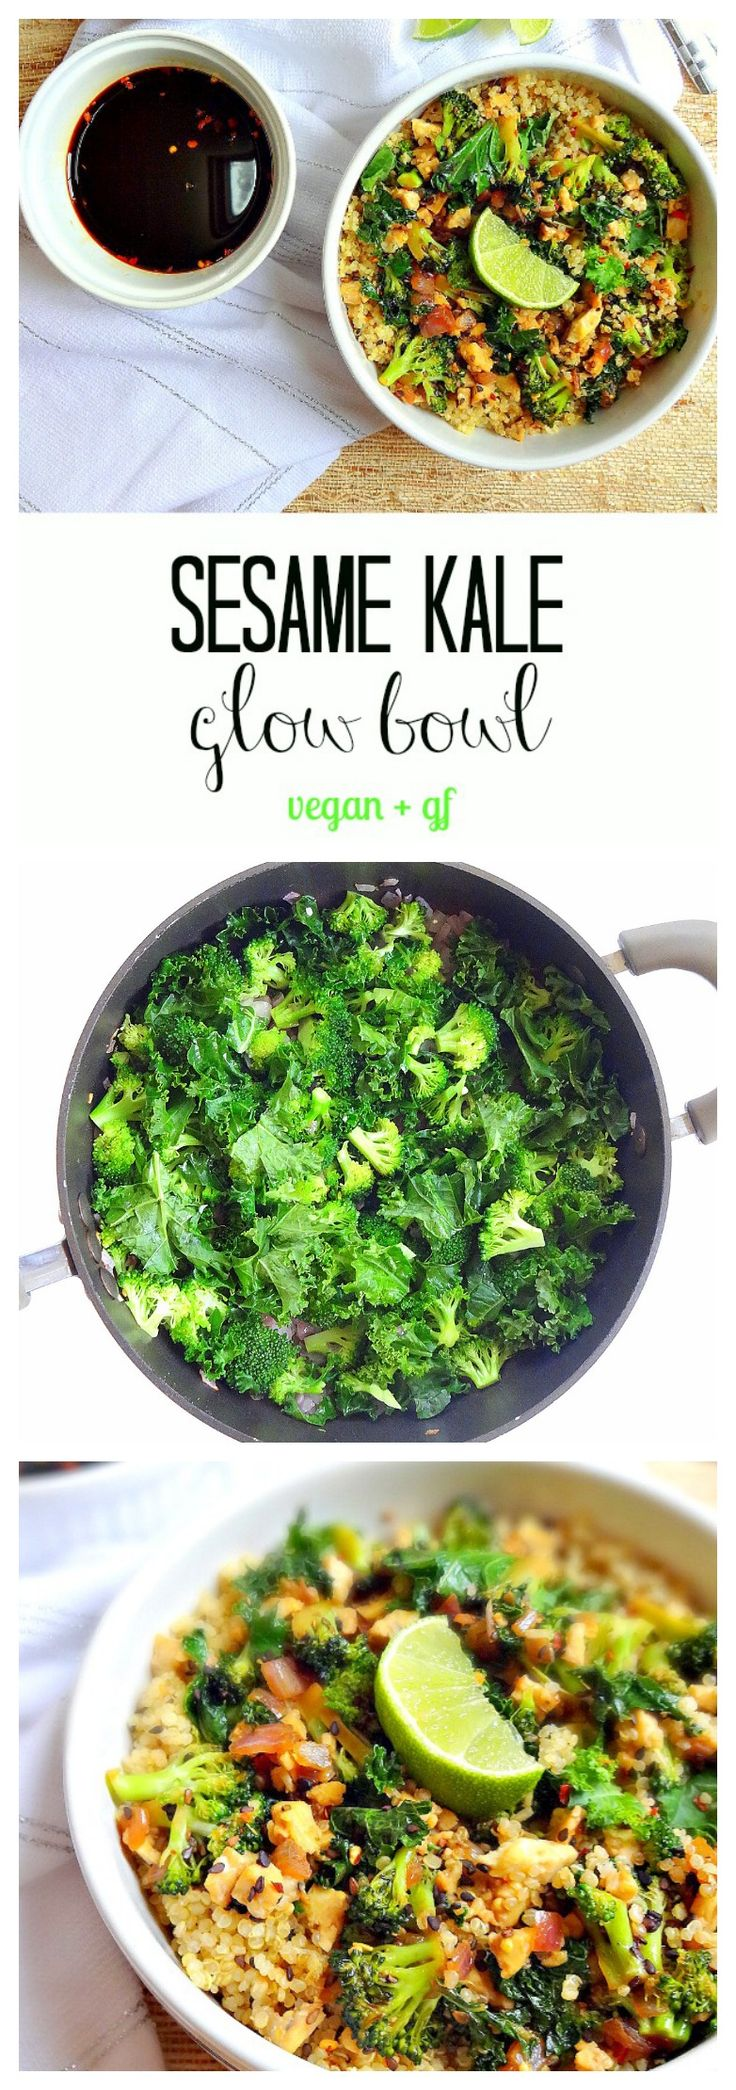 Sesame Kale Glow Bowl - vegan + gf - Simple, nourishing, flavorful and filling with high-quality plant protein from tempeh, kale, quinoa, broccoli, and sesame seeds. Plus a yummy soy ginger sauce, and it takes only 20 minutes to throw together! From The Glowing Fridge